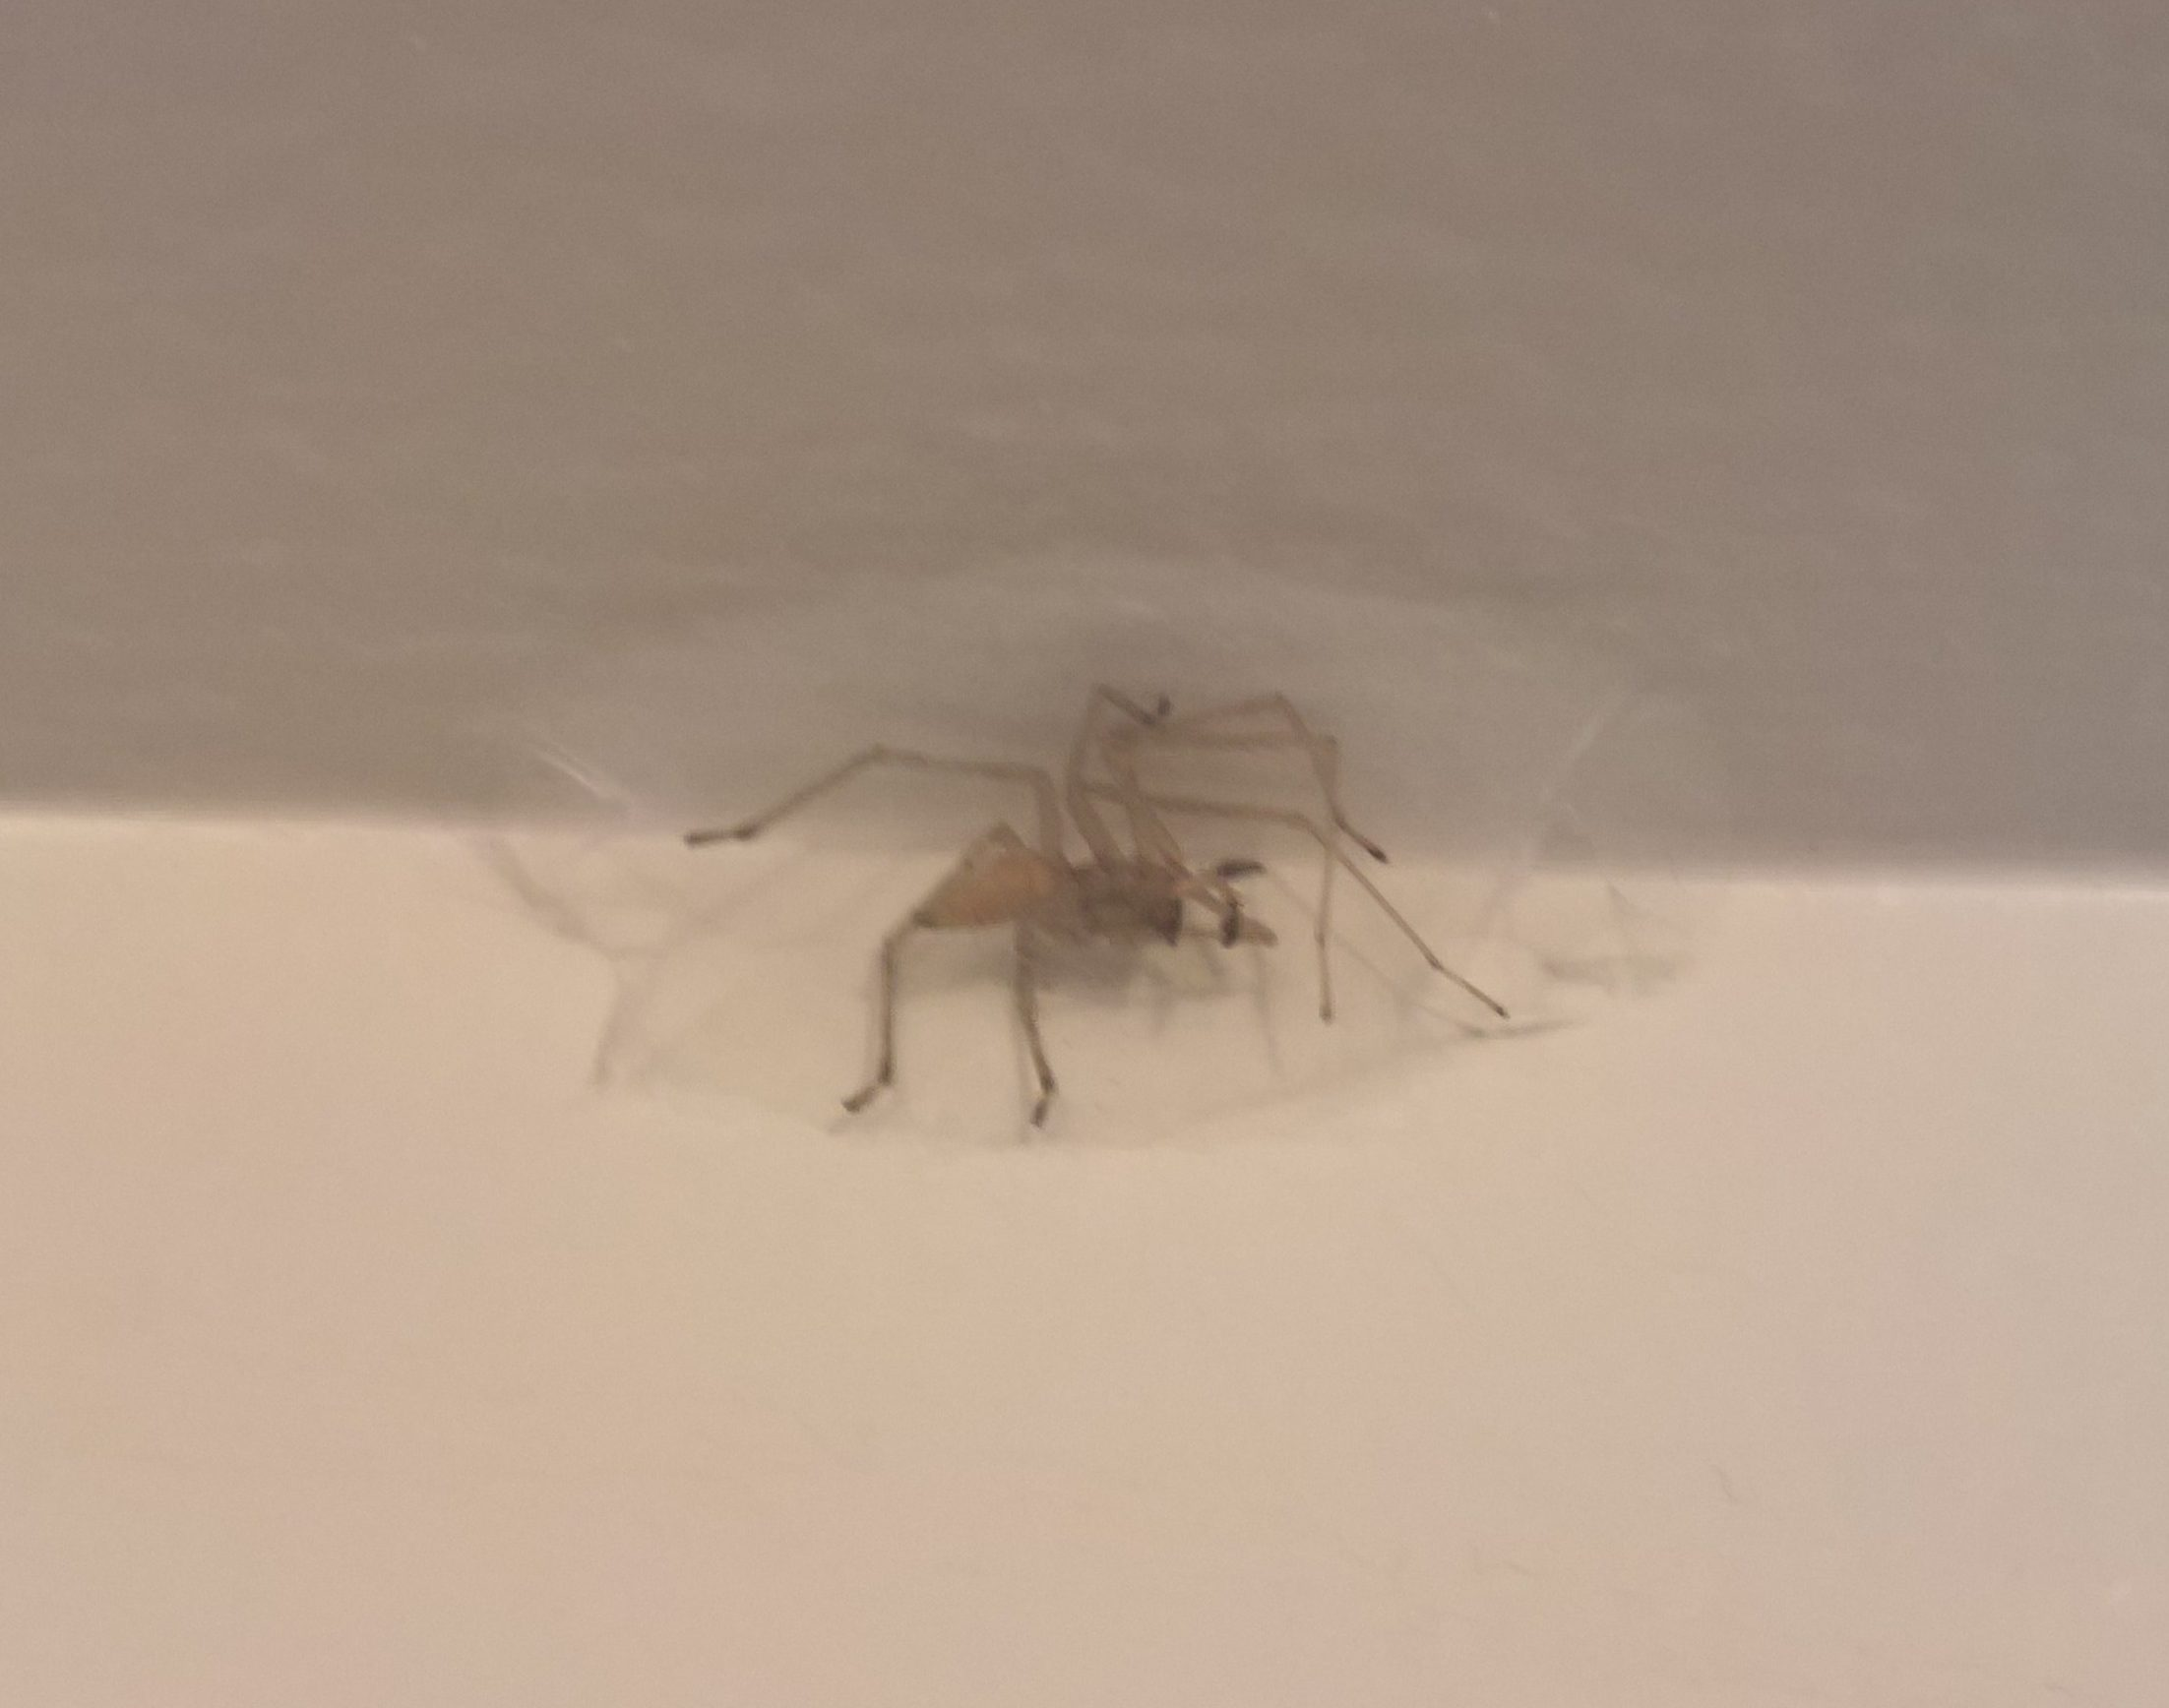 Picture of Cheiracanthium mildei (Long-legged Sac Spider) - Male - Ventral,In Retreat